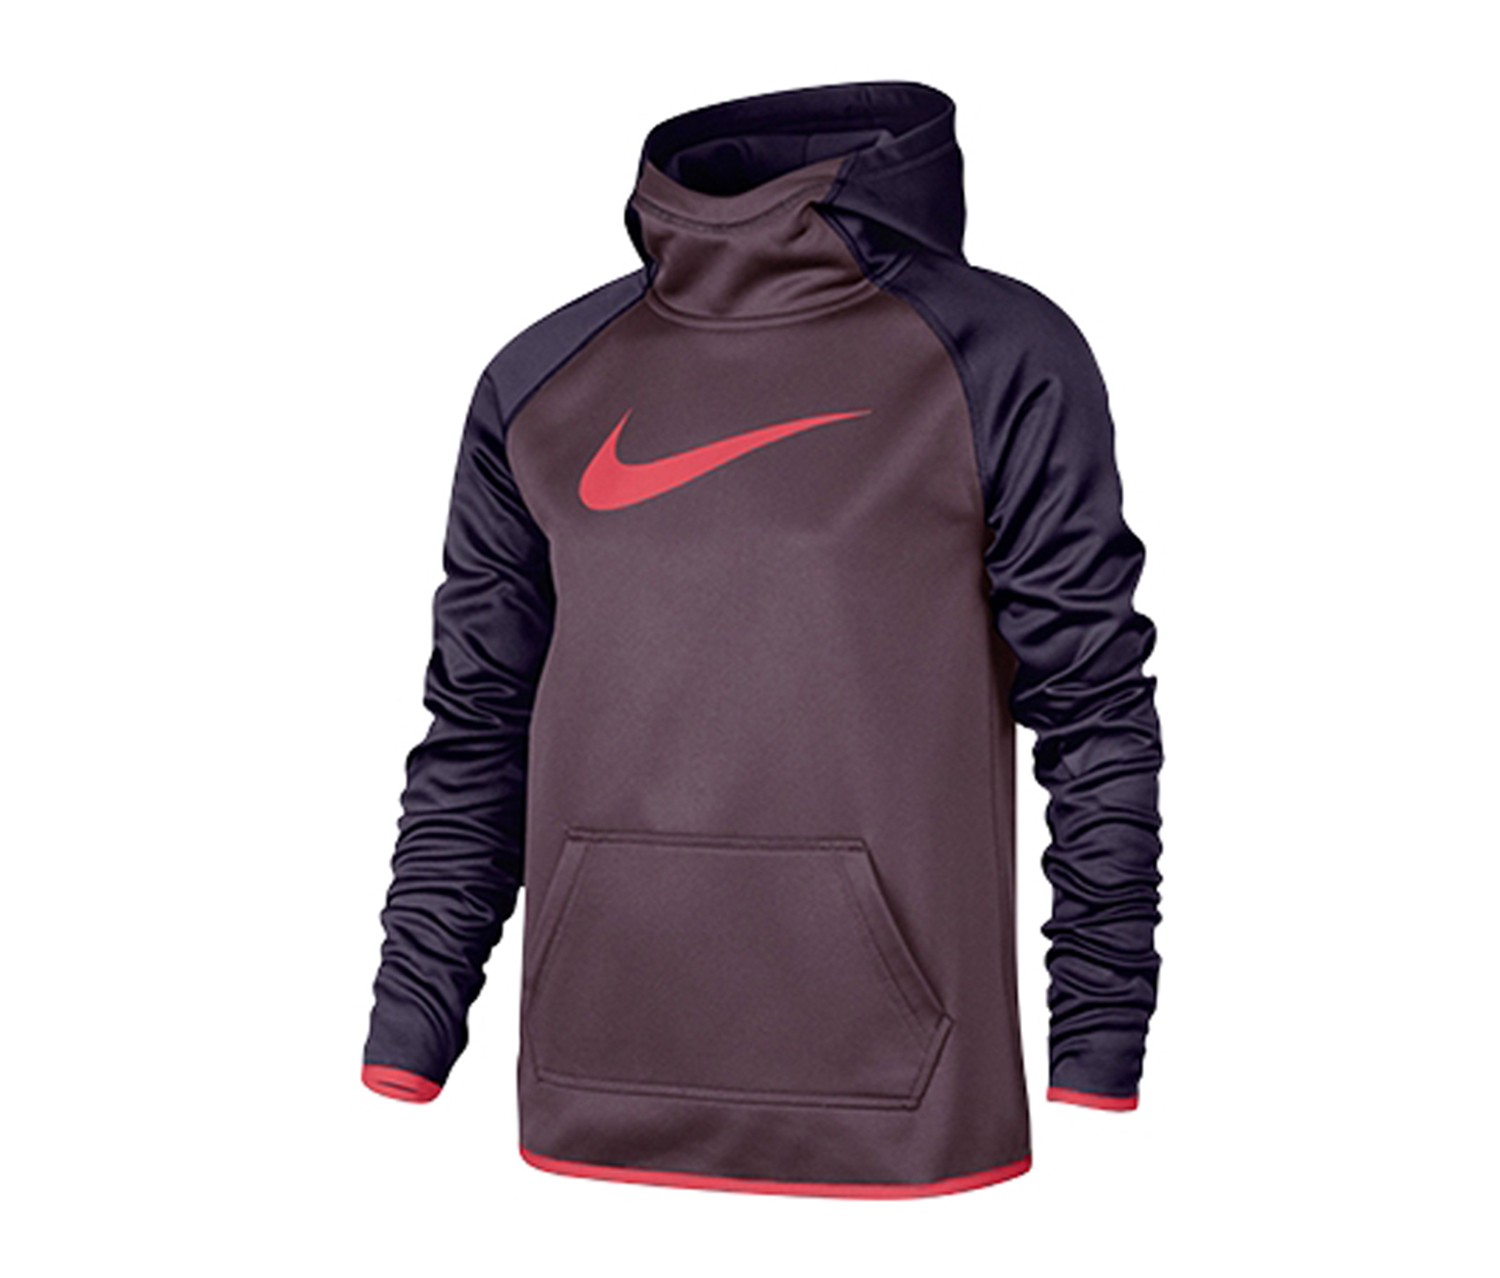 e4df2ce31a32b Shop Nike Nike Kids Girls' Therma Training Hoodie Sweatshirt, Purple ...